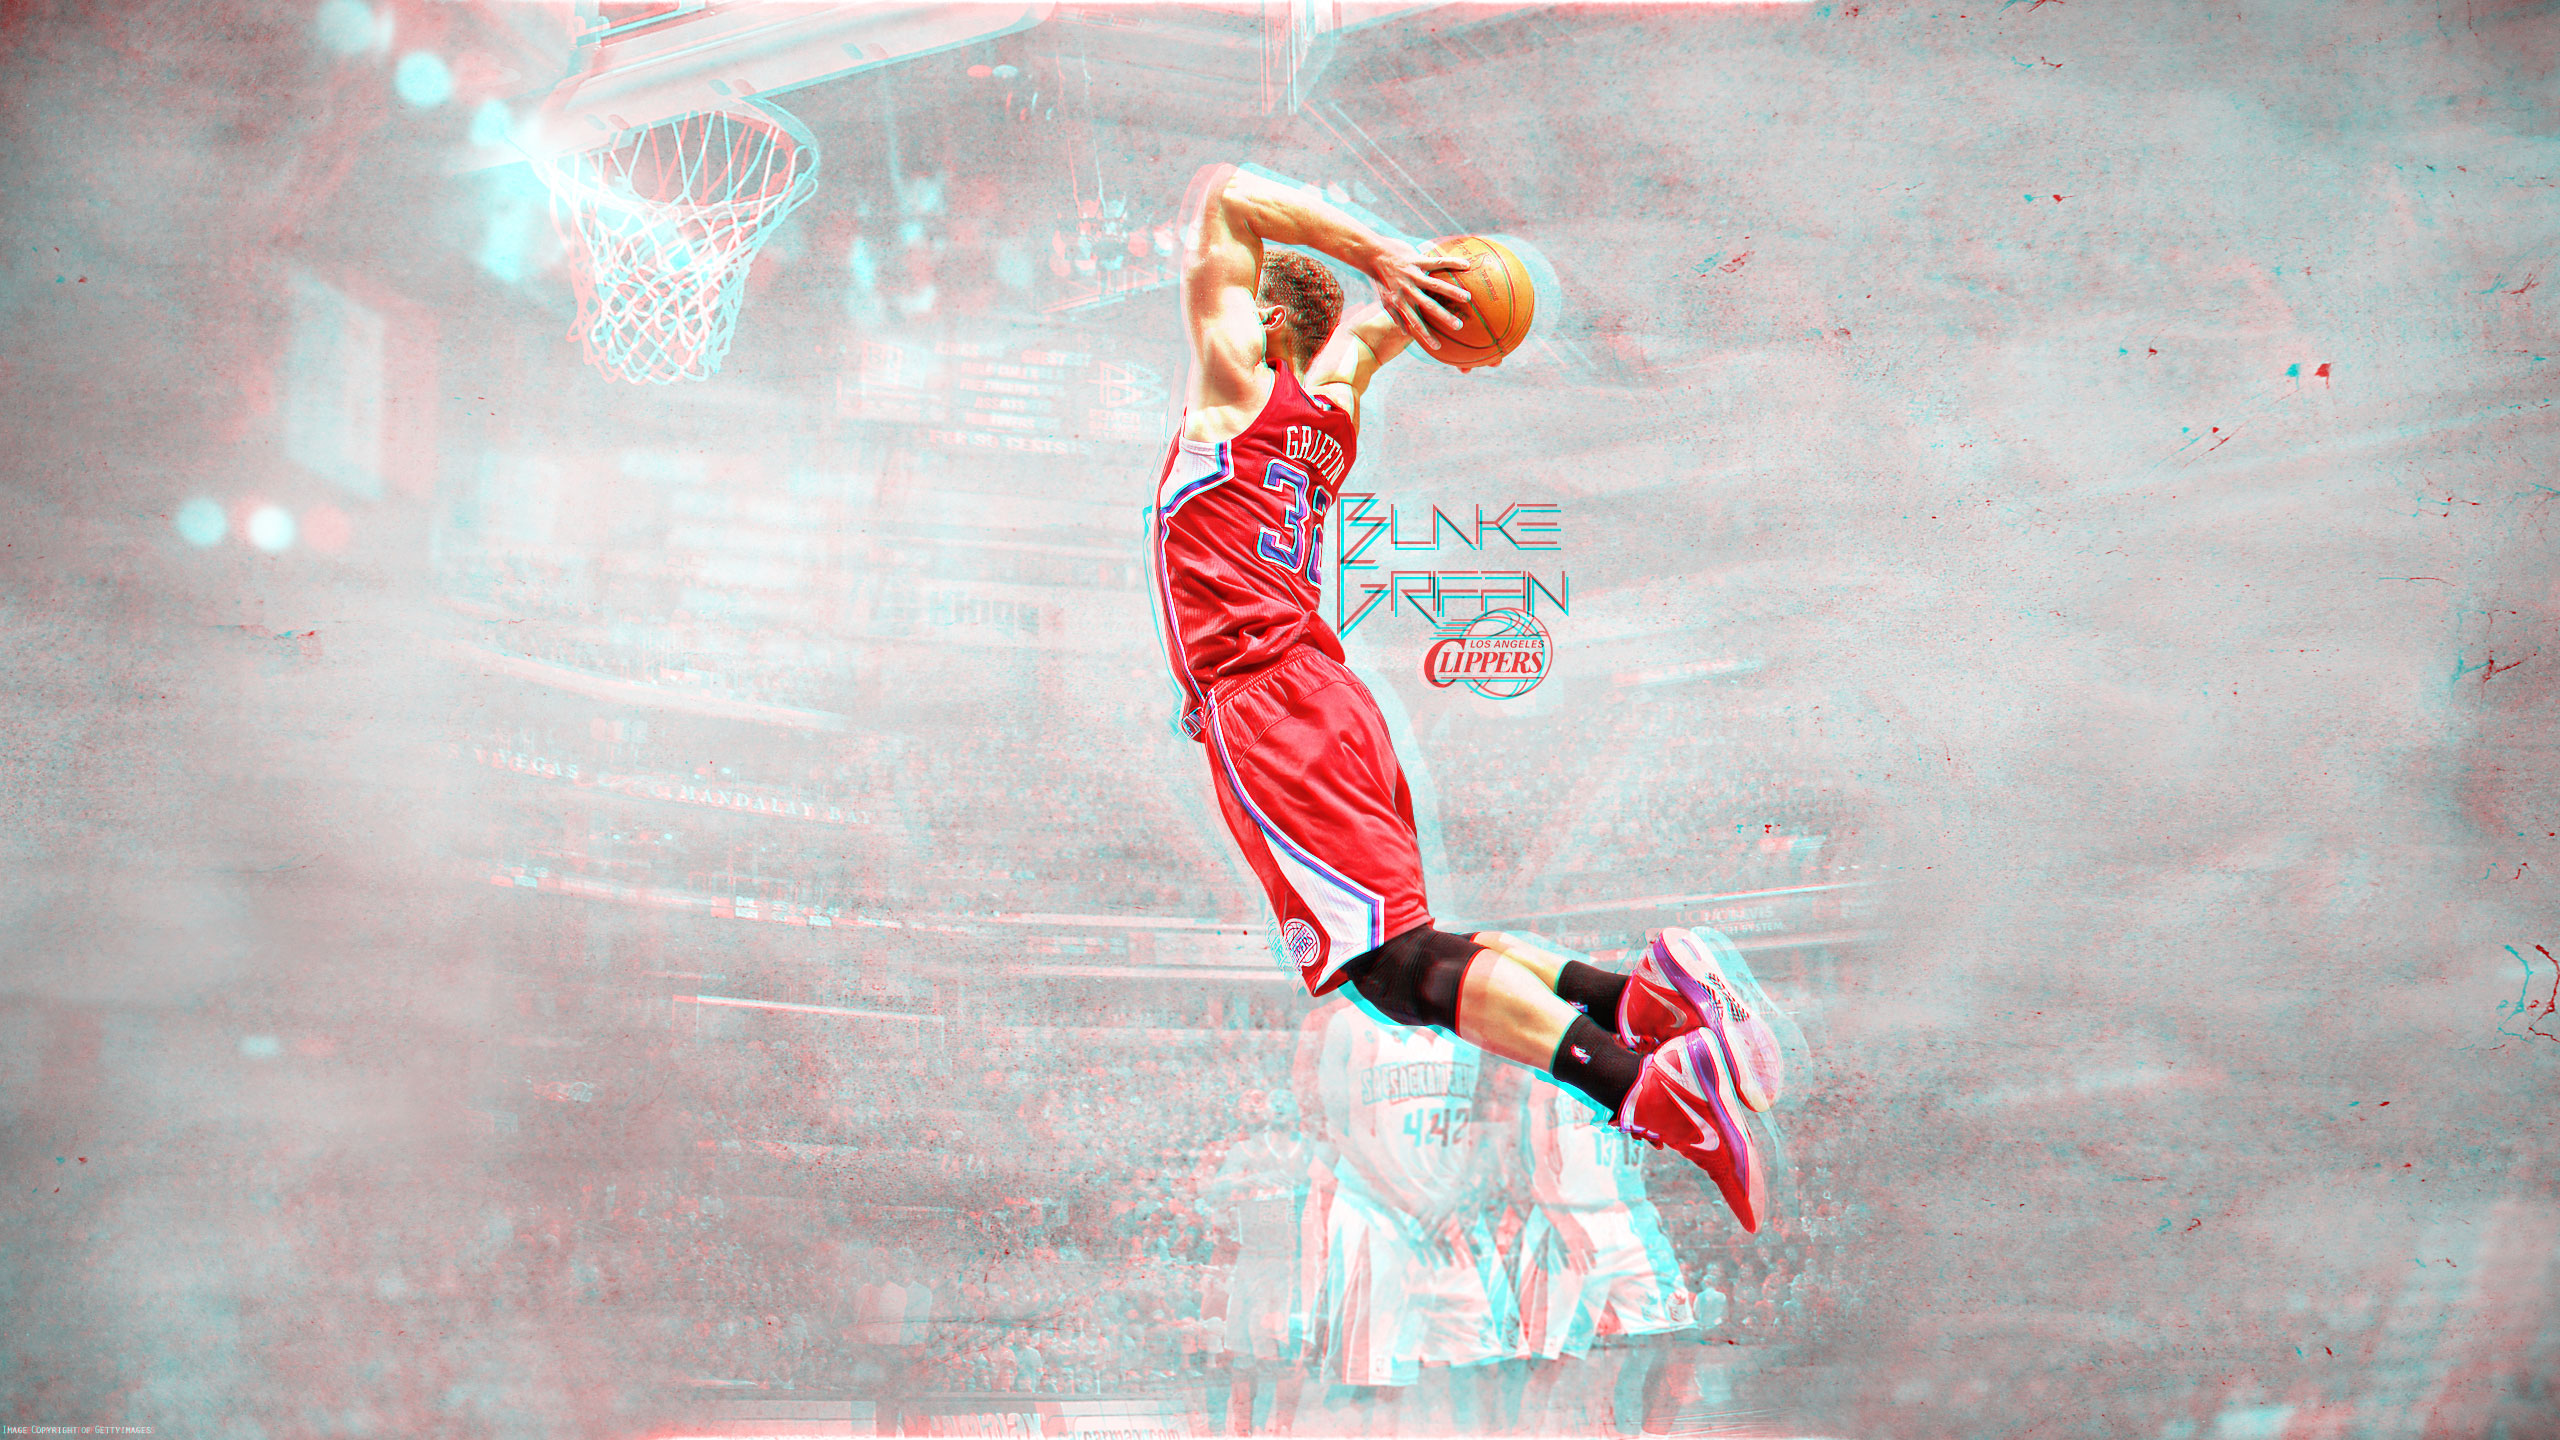 Awesome Blake Griffin Wallpaper 17125 2560x1440 px ...